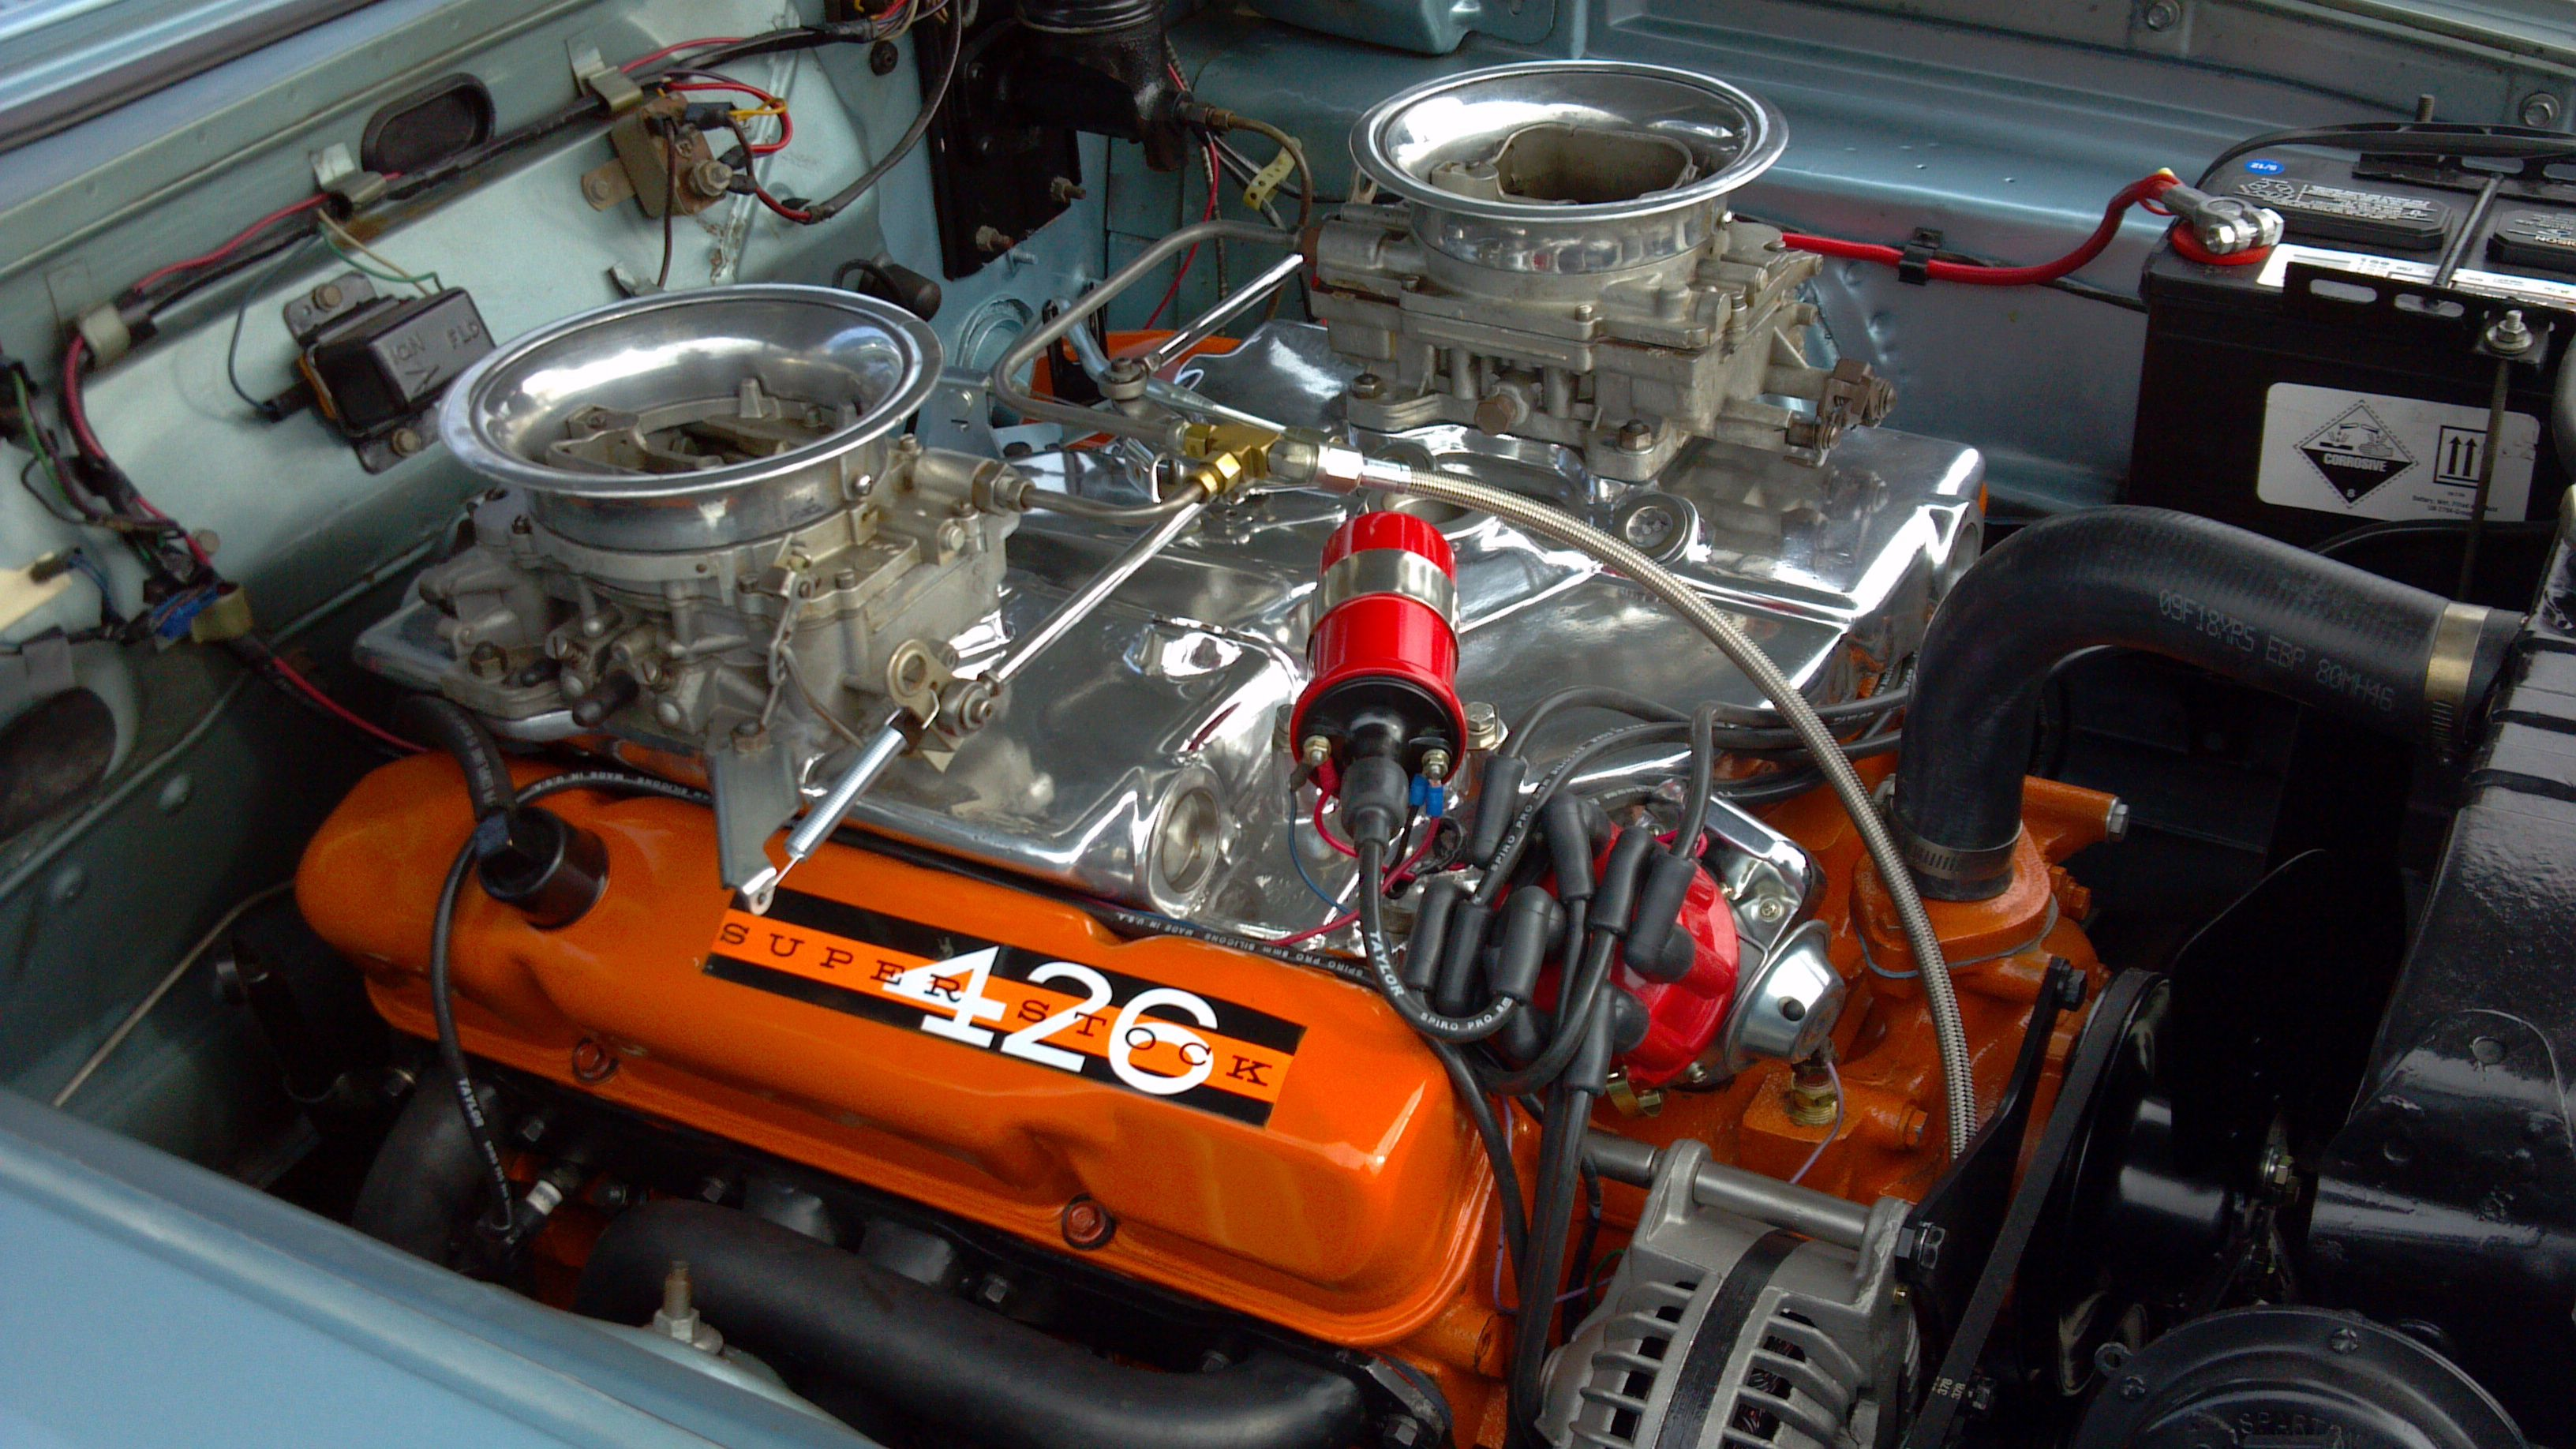 426 Max Wedge Engines For Sale.html | Autos Post